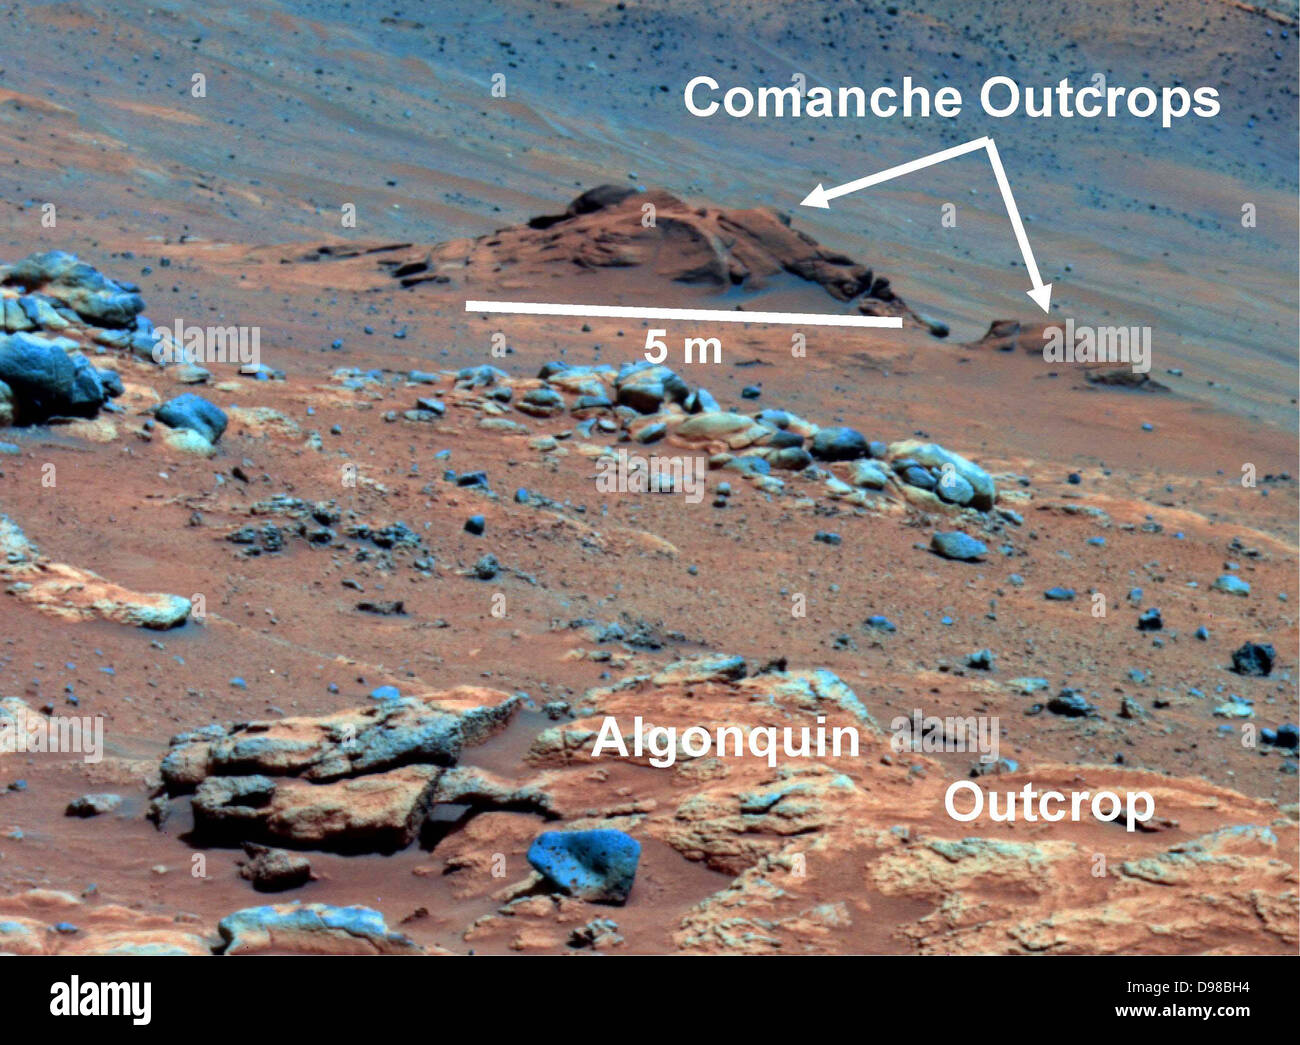 Comanche Outcrop on Mars Indicates Hospitable Past - Stock Image